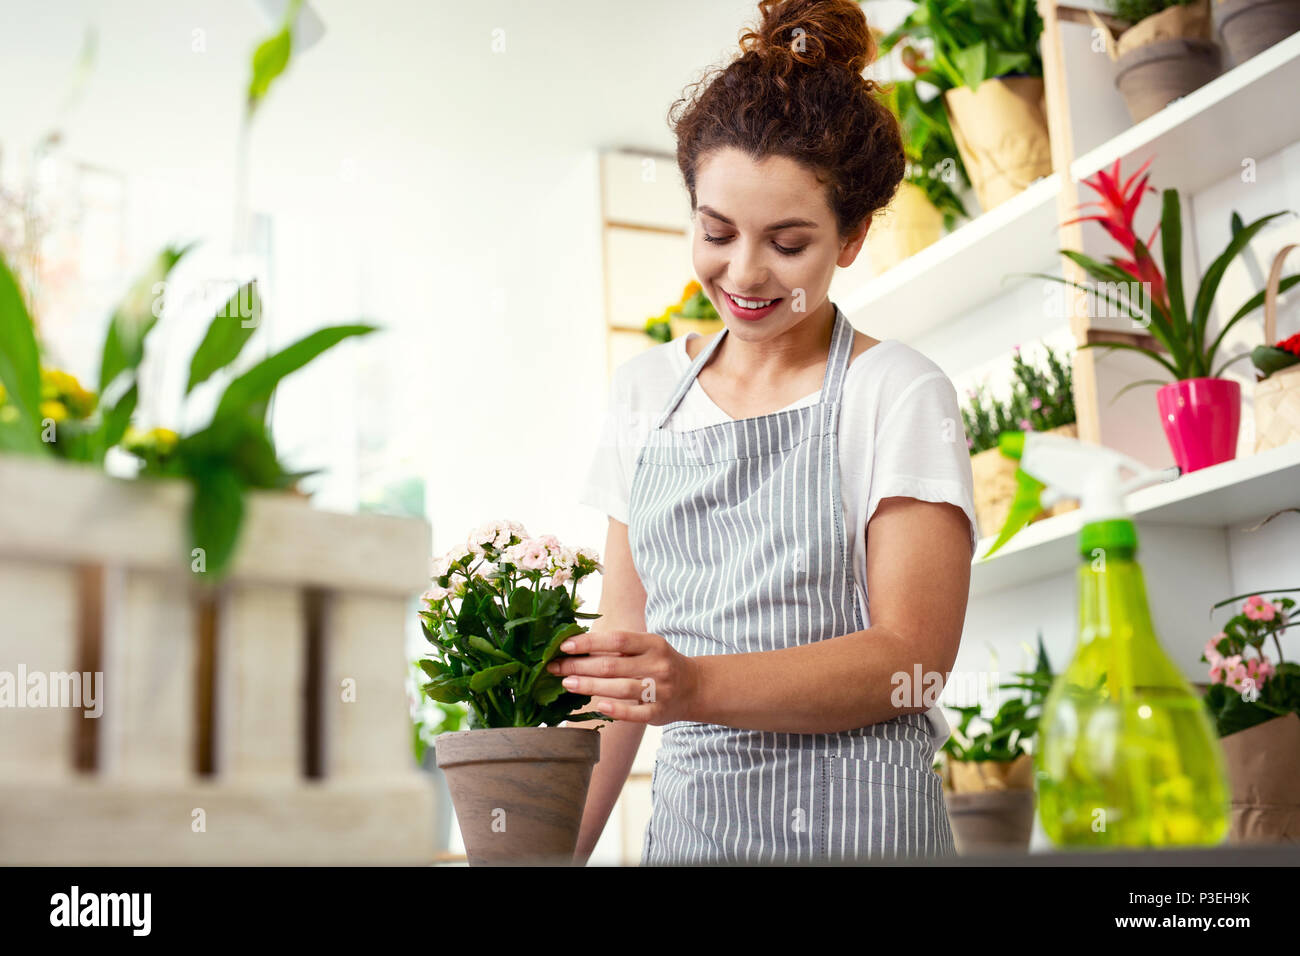 Delighted cheerful woman caring about the flower - Stock Image